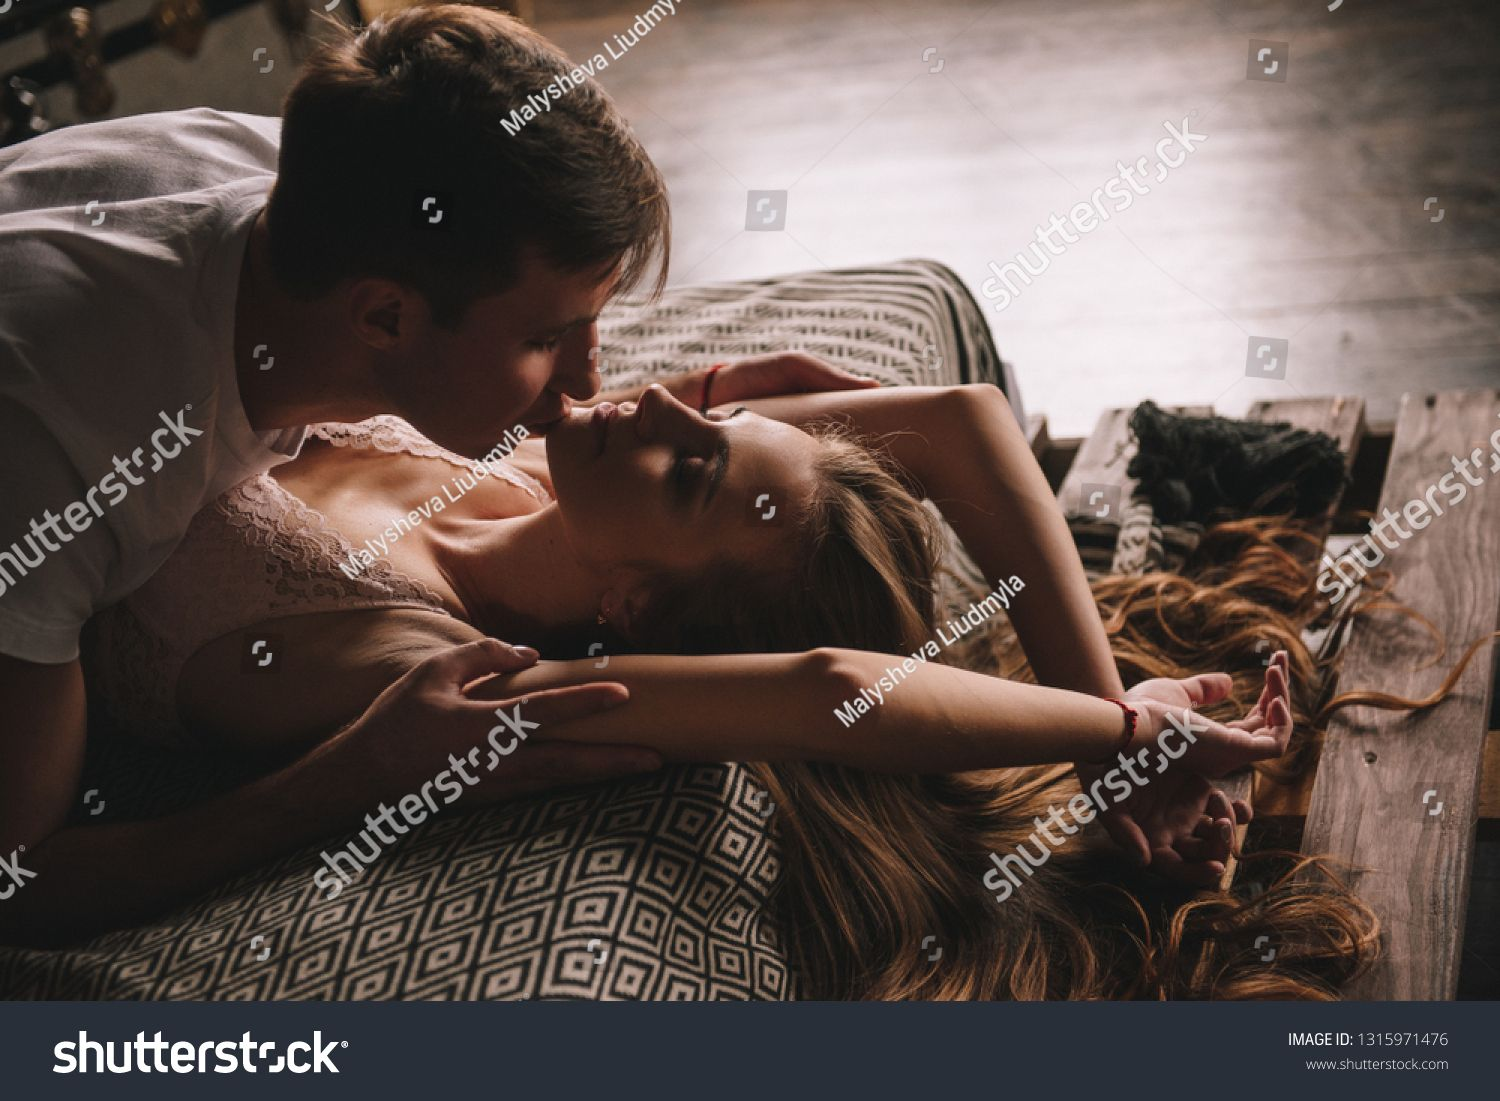 Couple On The Bed In The Bedroom Dark Interior Hugs And Kisses